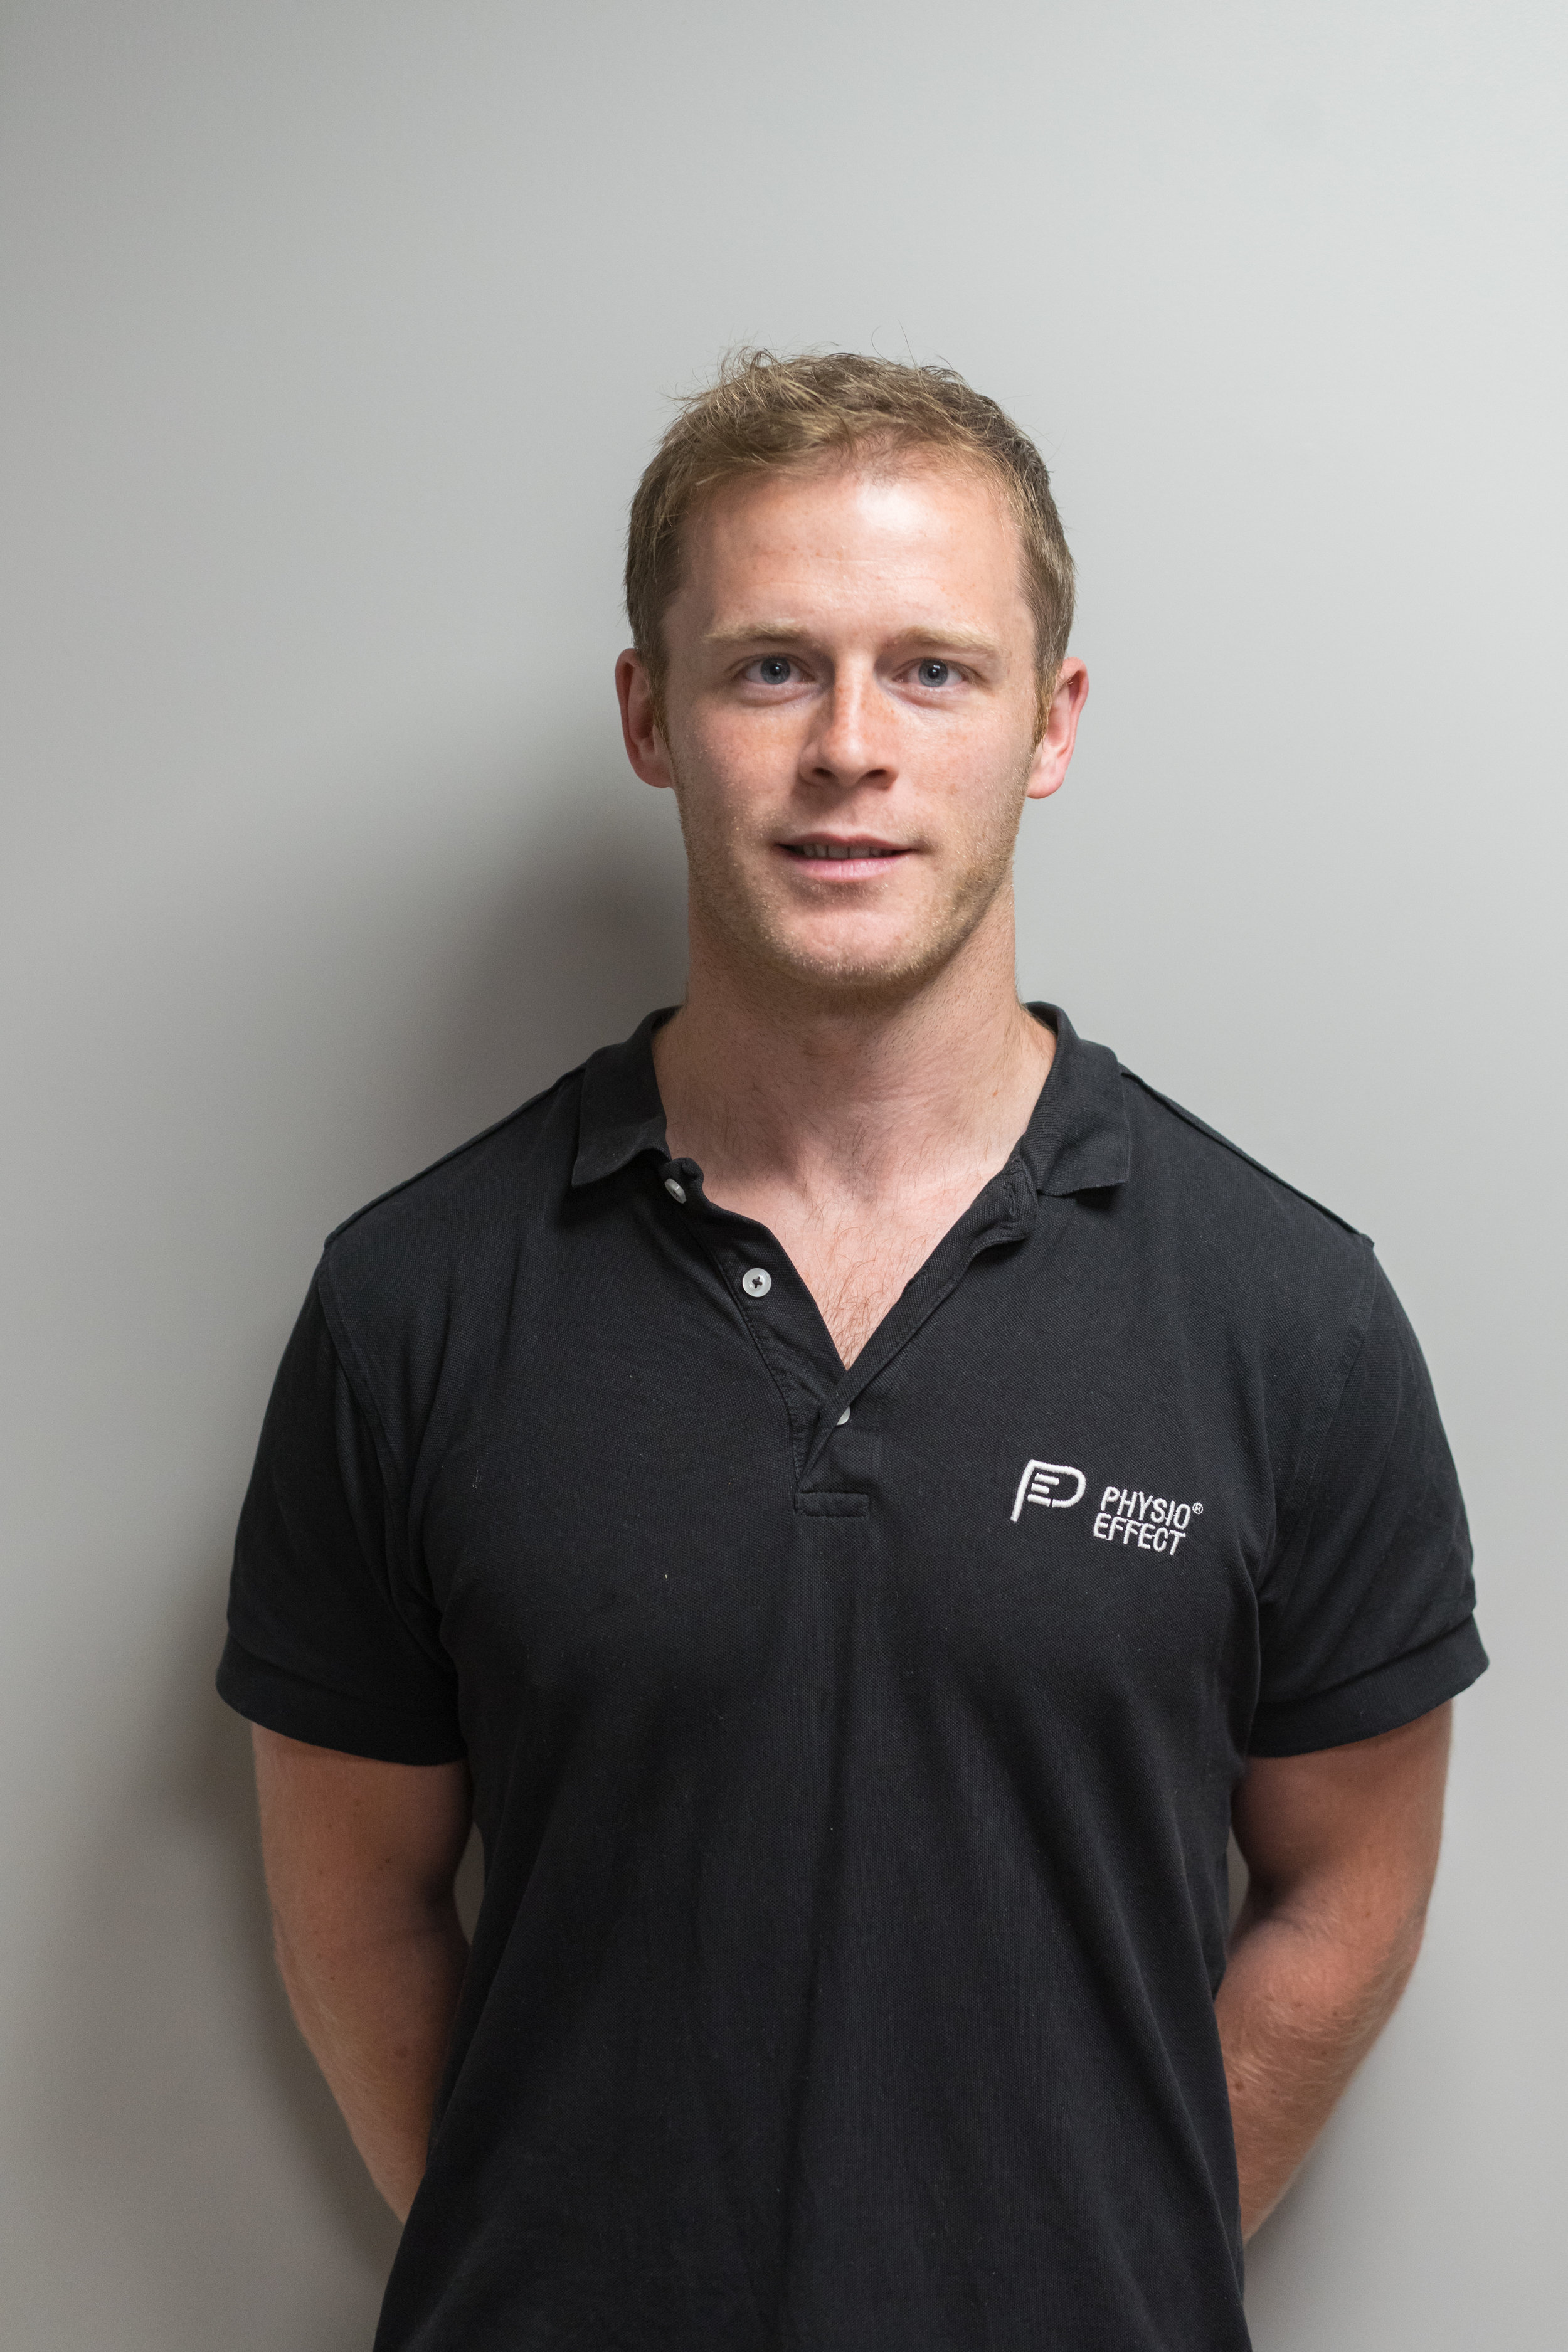 Jonathan Kilpatrick Chartered Physiotherapist BSc(Hons), PGDip Sports Physiotherapy